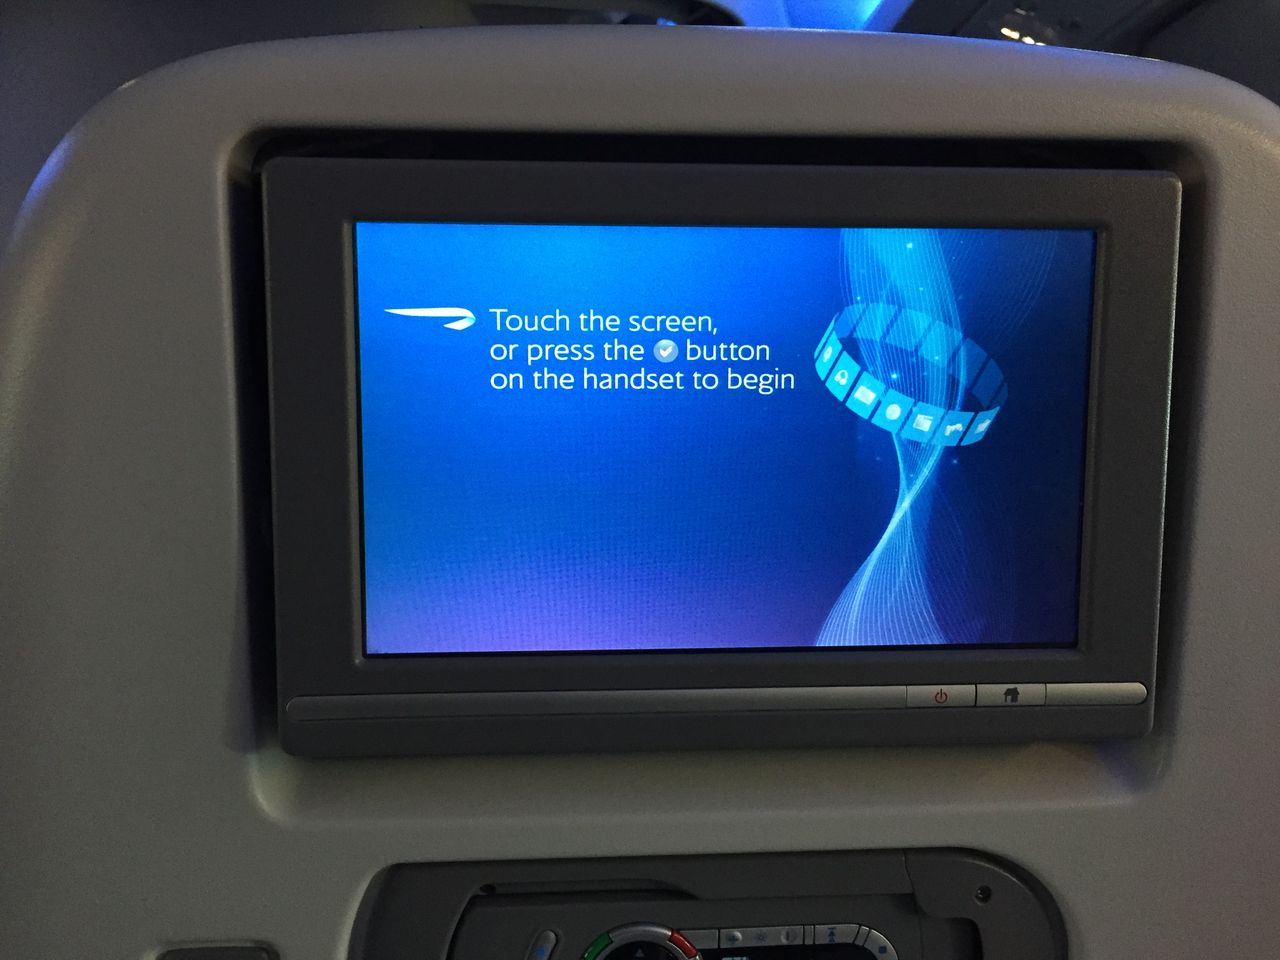 Review of British Airways flight from London to San